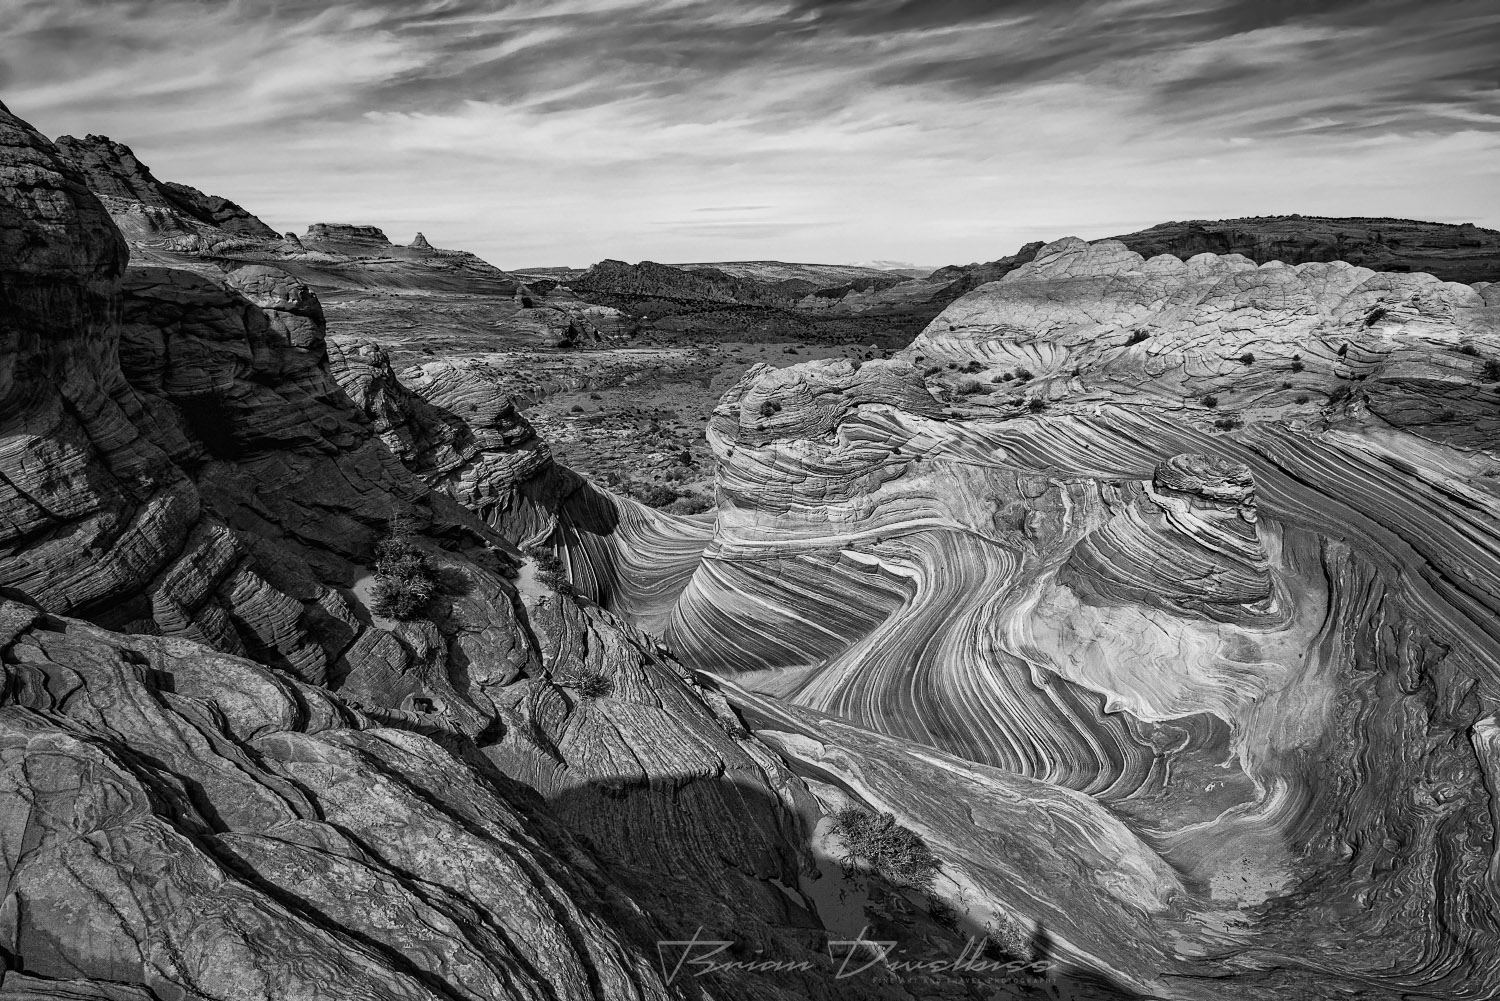 The Wave and Vermilion Cliffs National Monument from above on the Wave Trail.